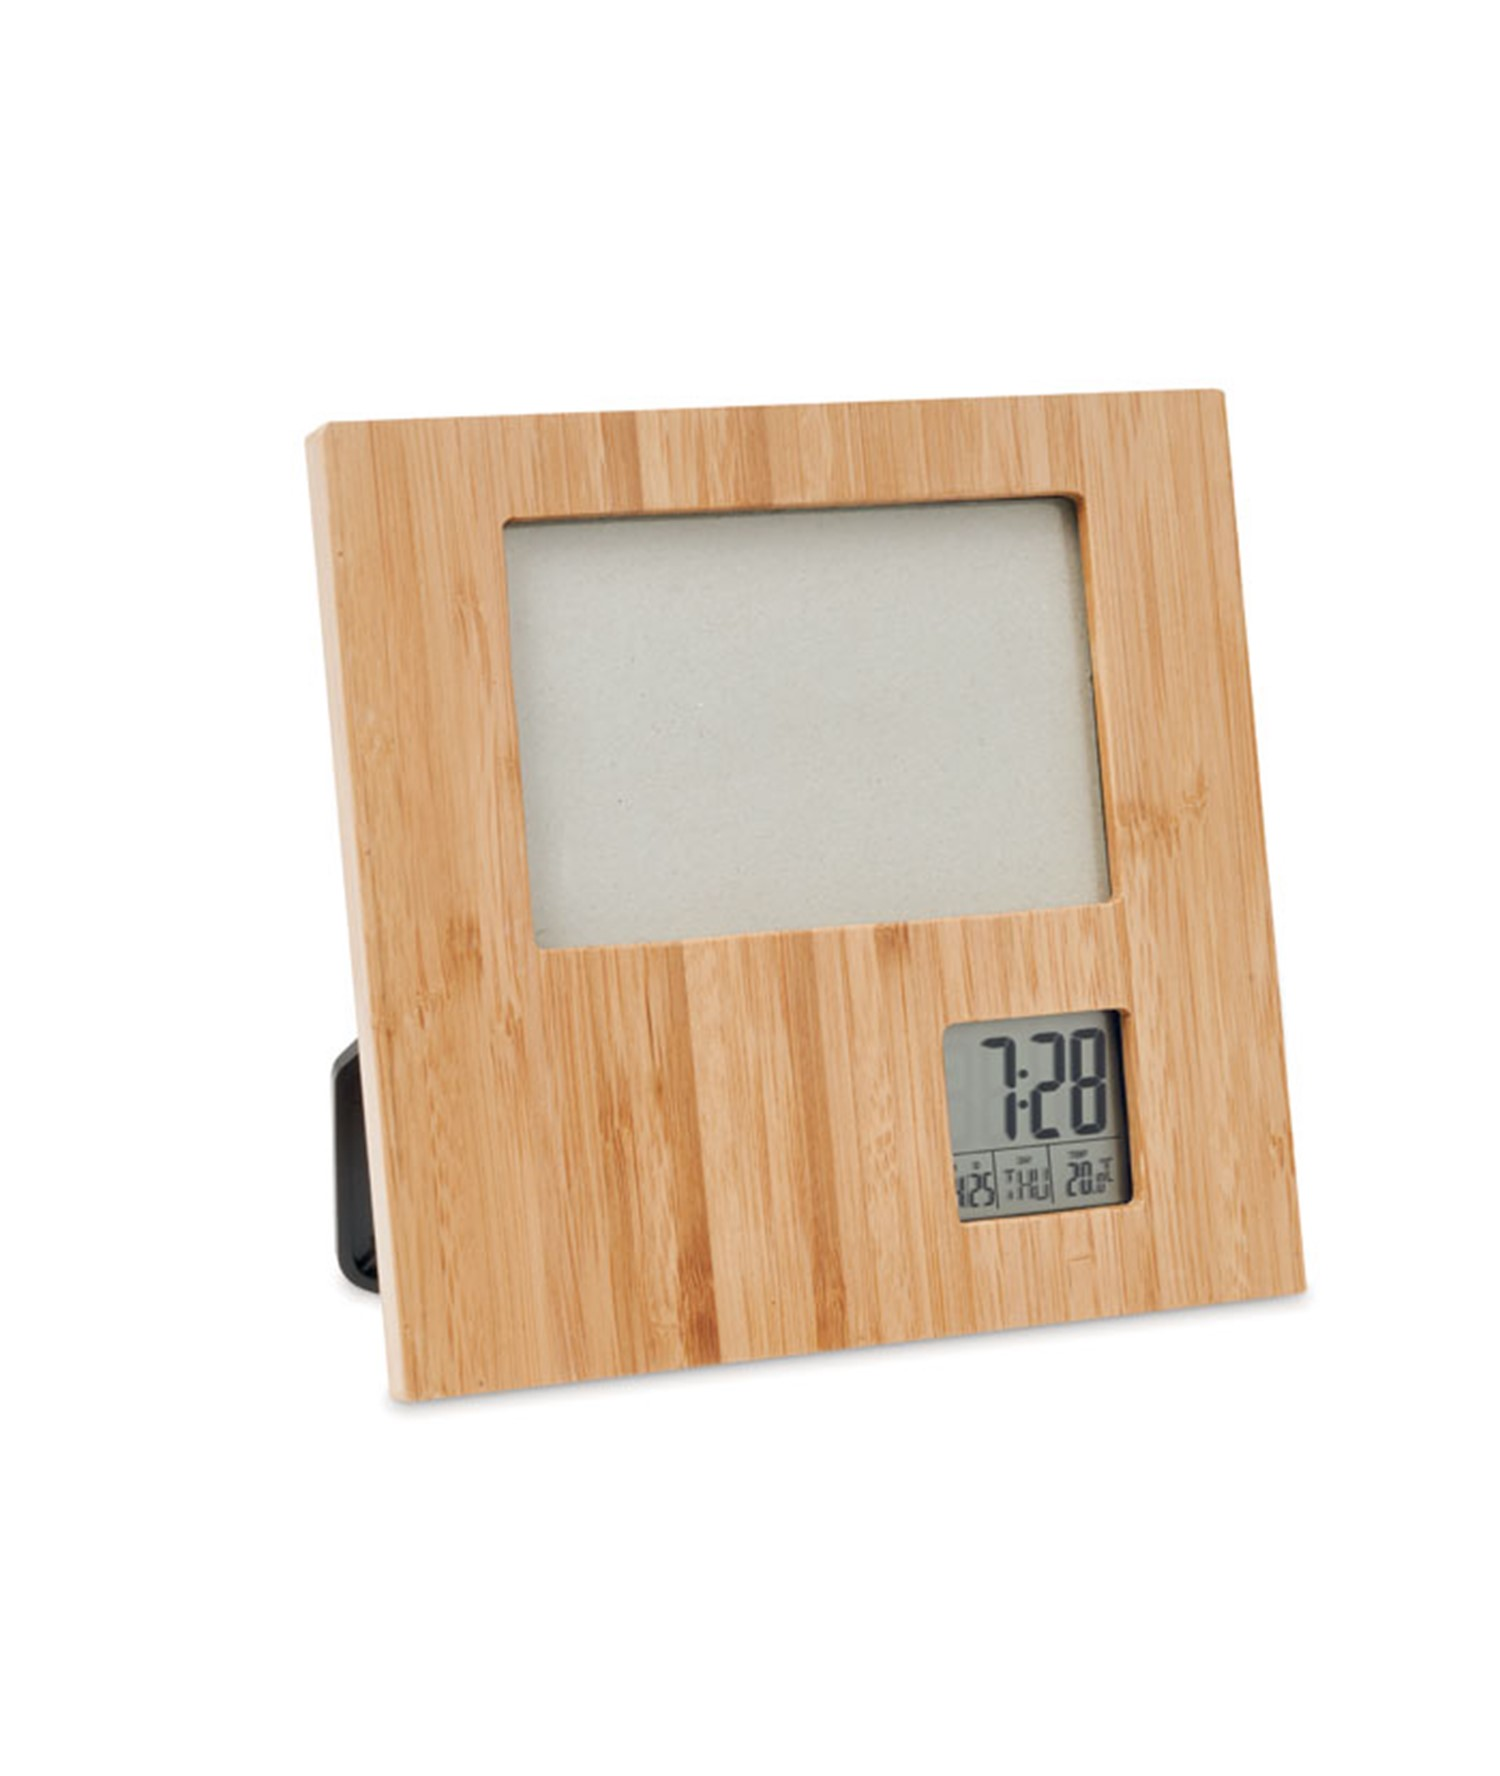 ZENFRAME - PHOTO FRAME WITH WEATHER STATION